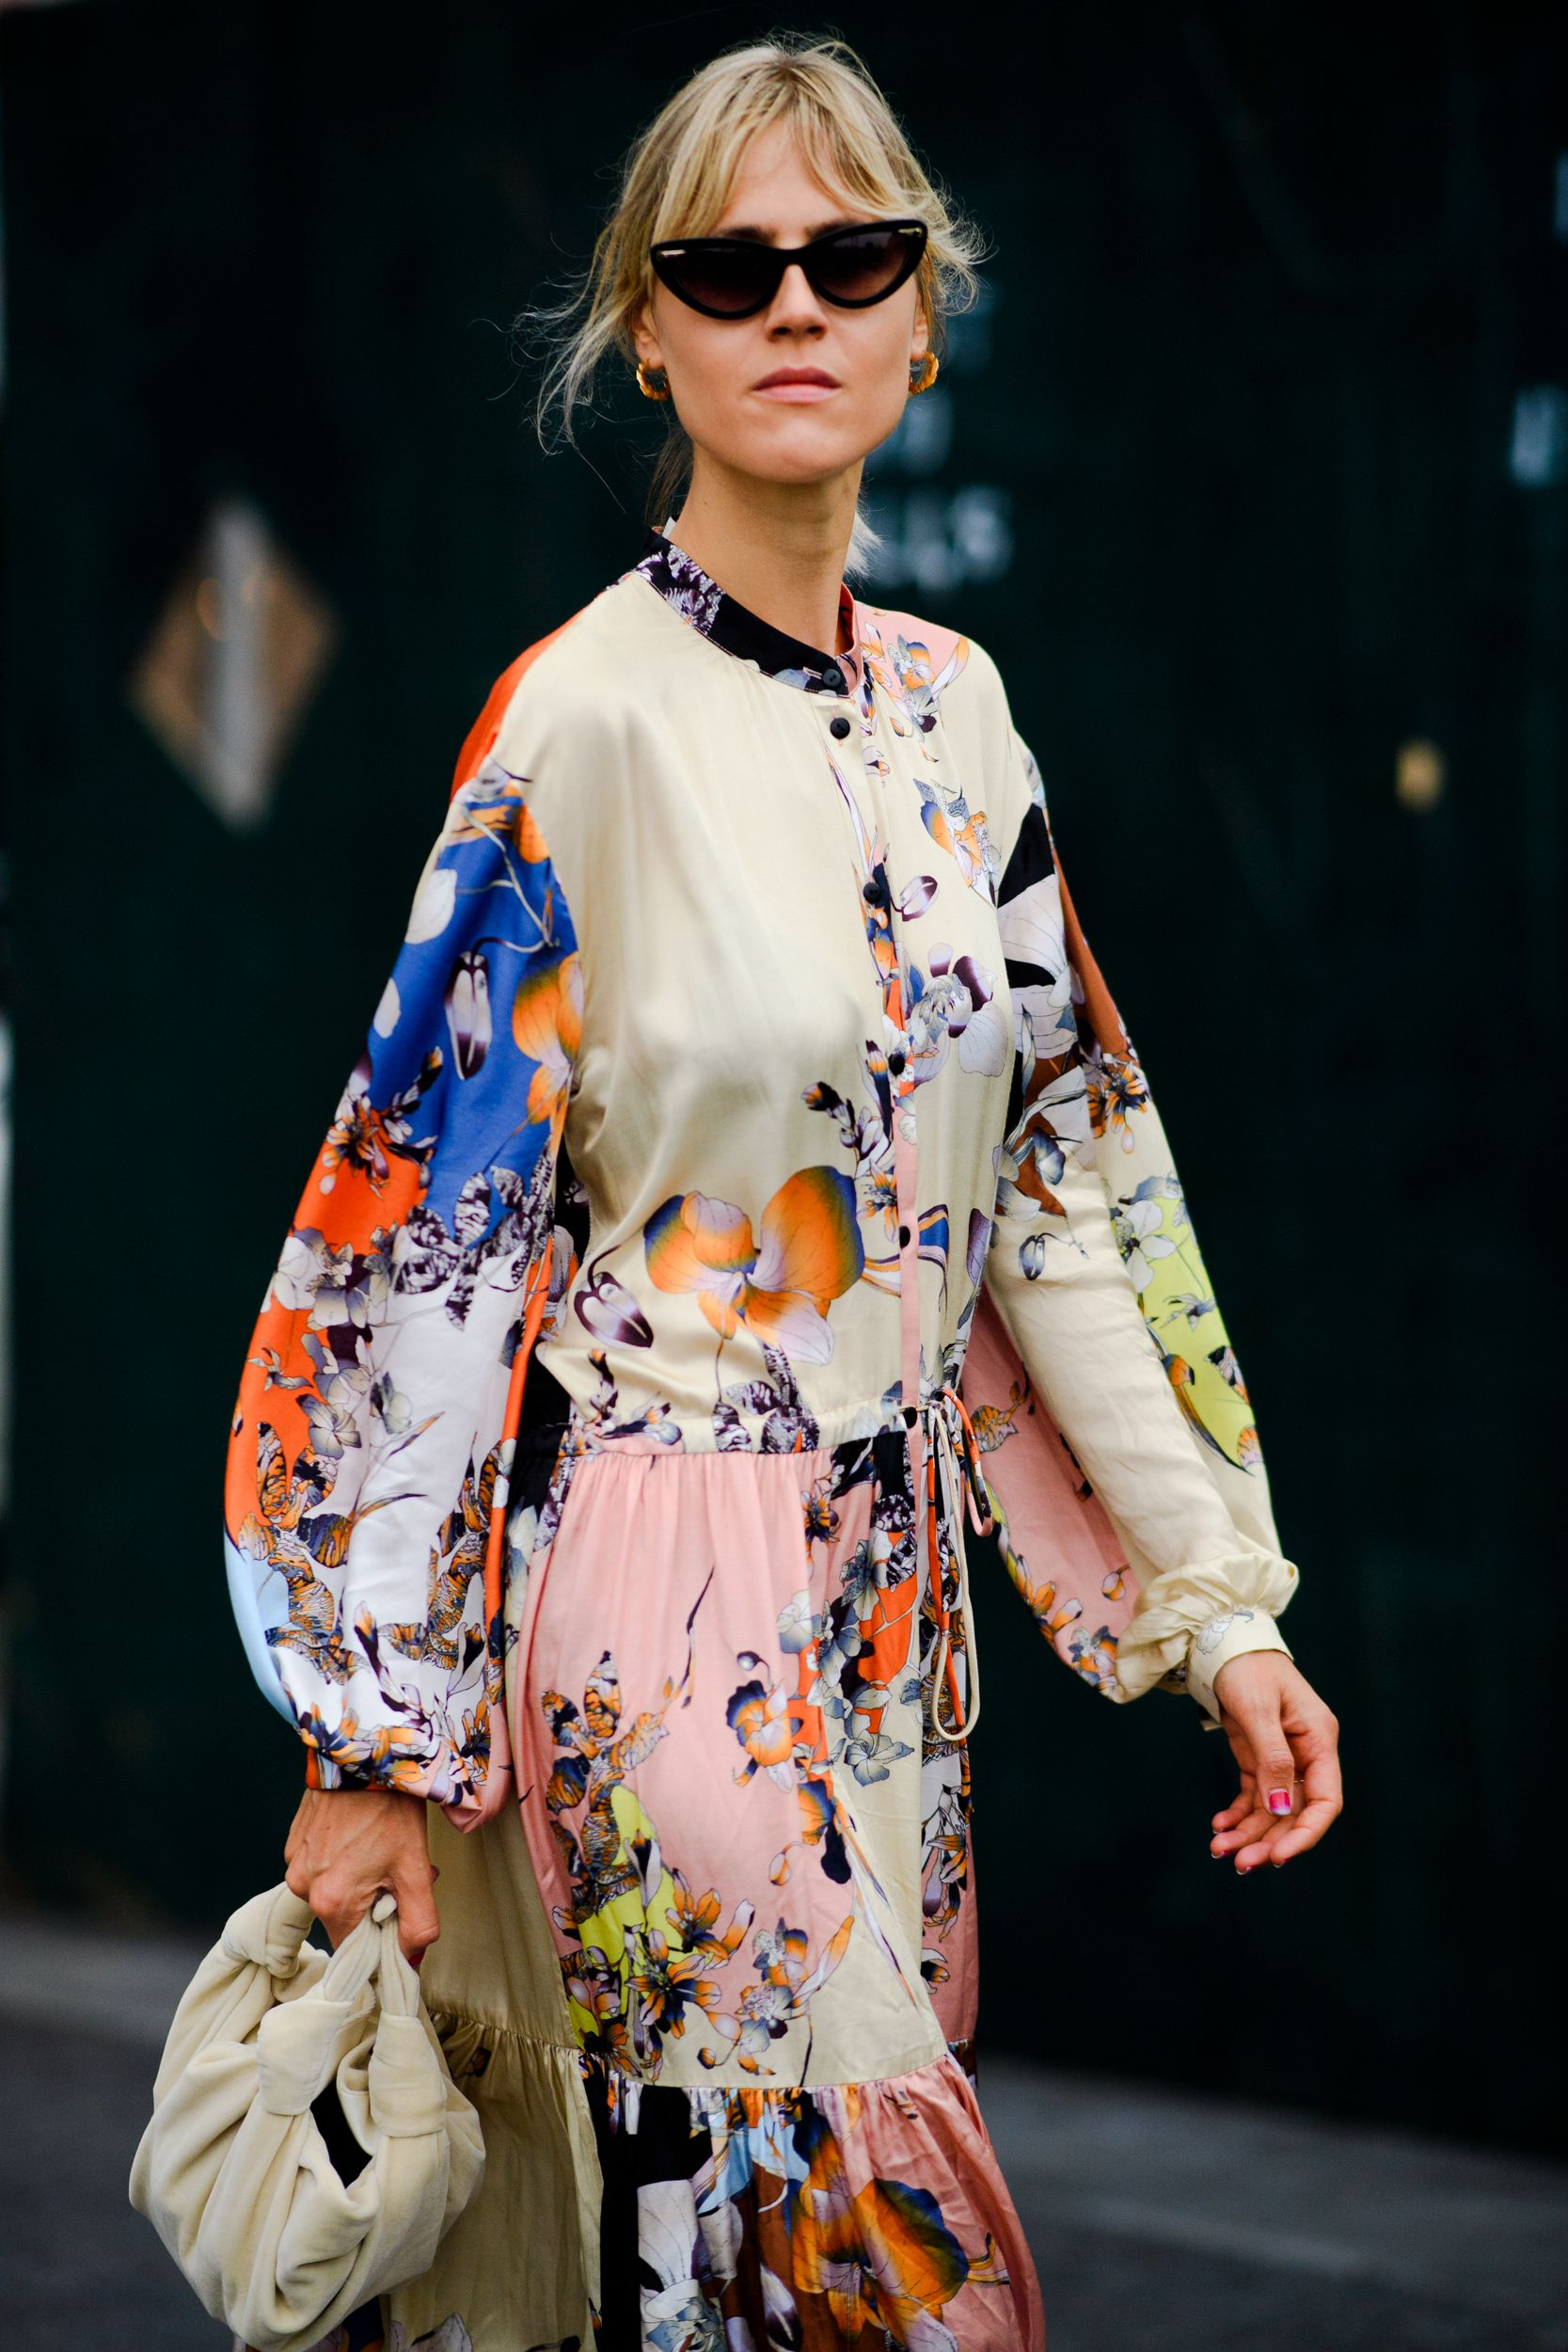 5 Hot Looks From New York Fashion Week